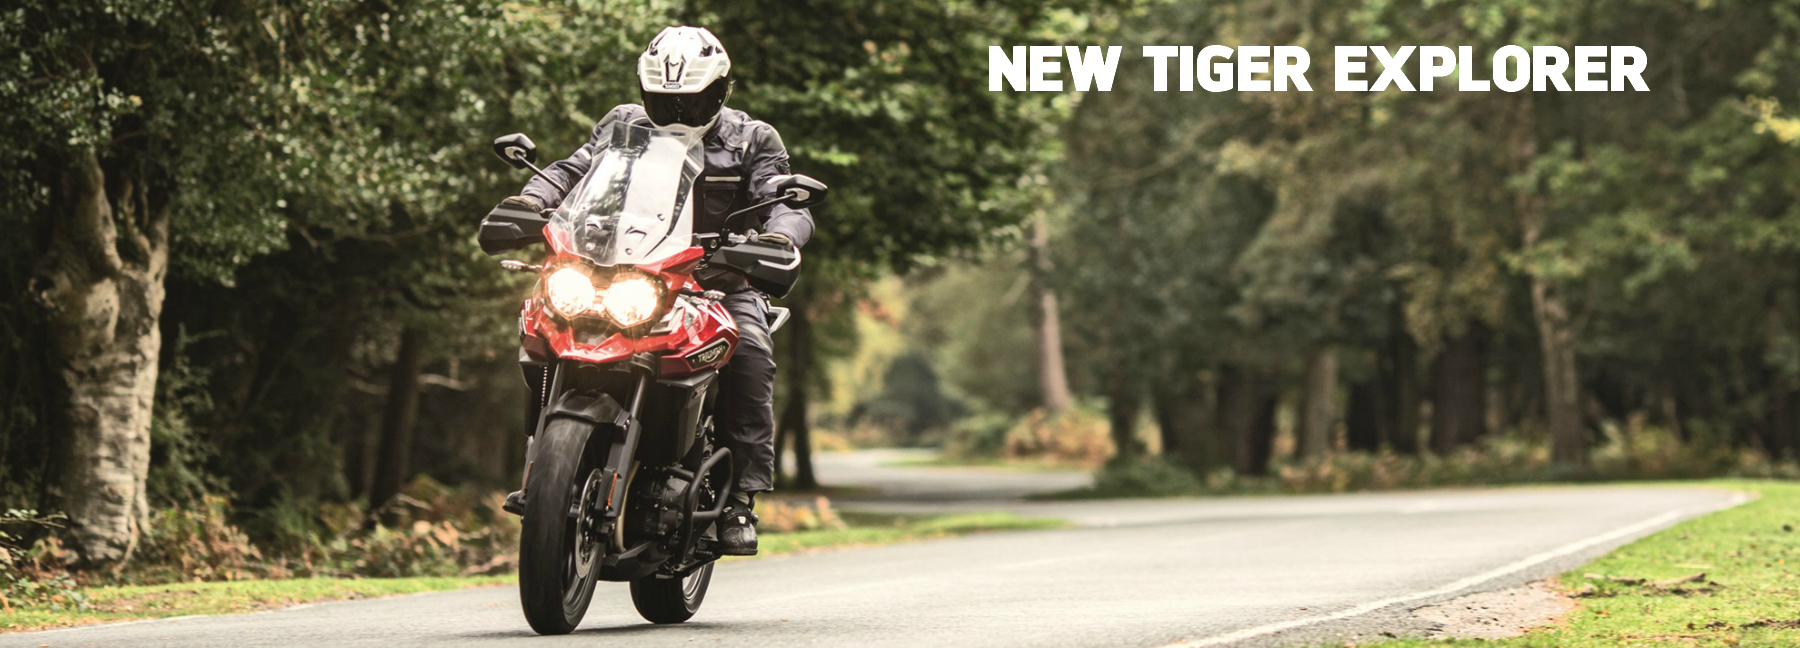 2016 Triumph of Westchester Tiger Explorer Family